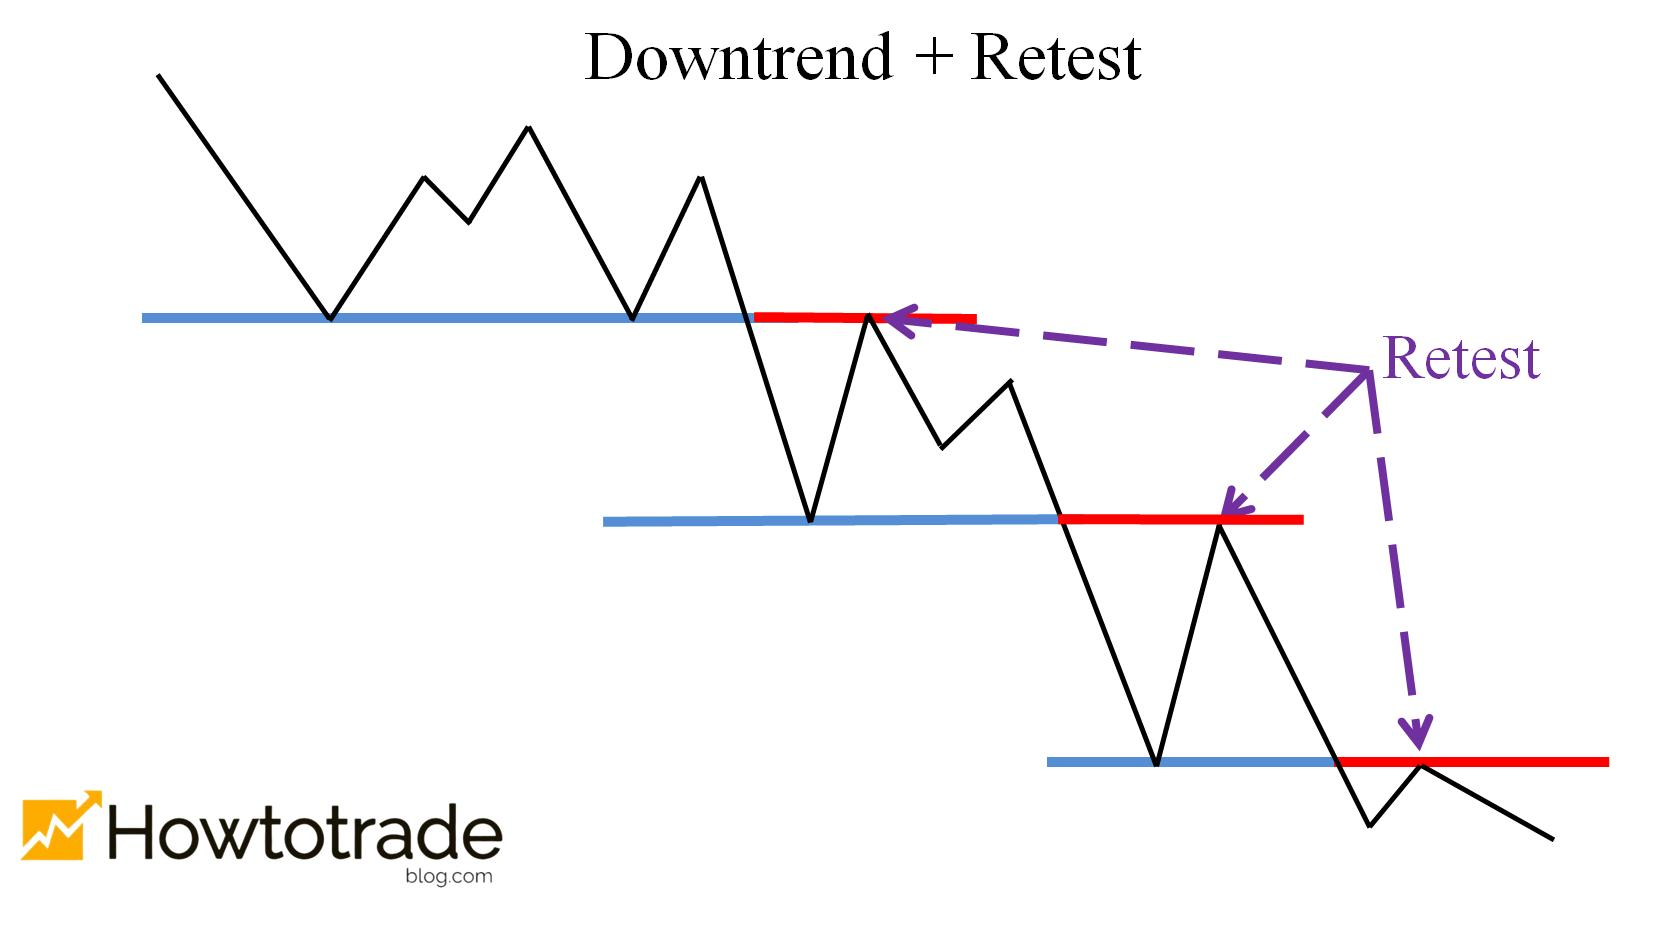 The price falls out of the trough in a downward trend and retests